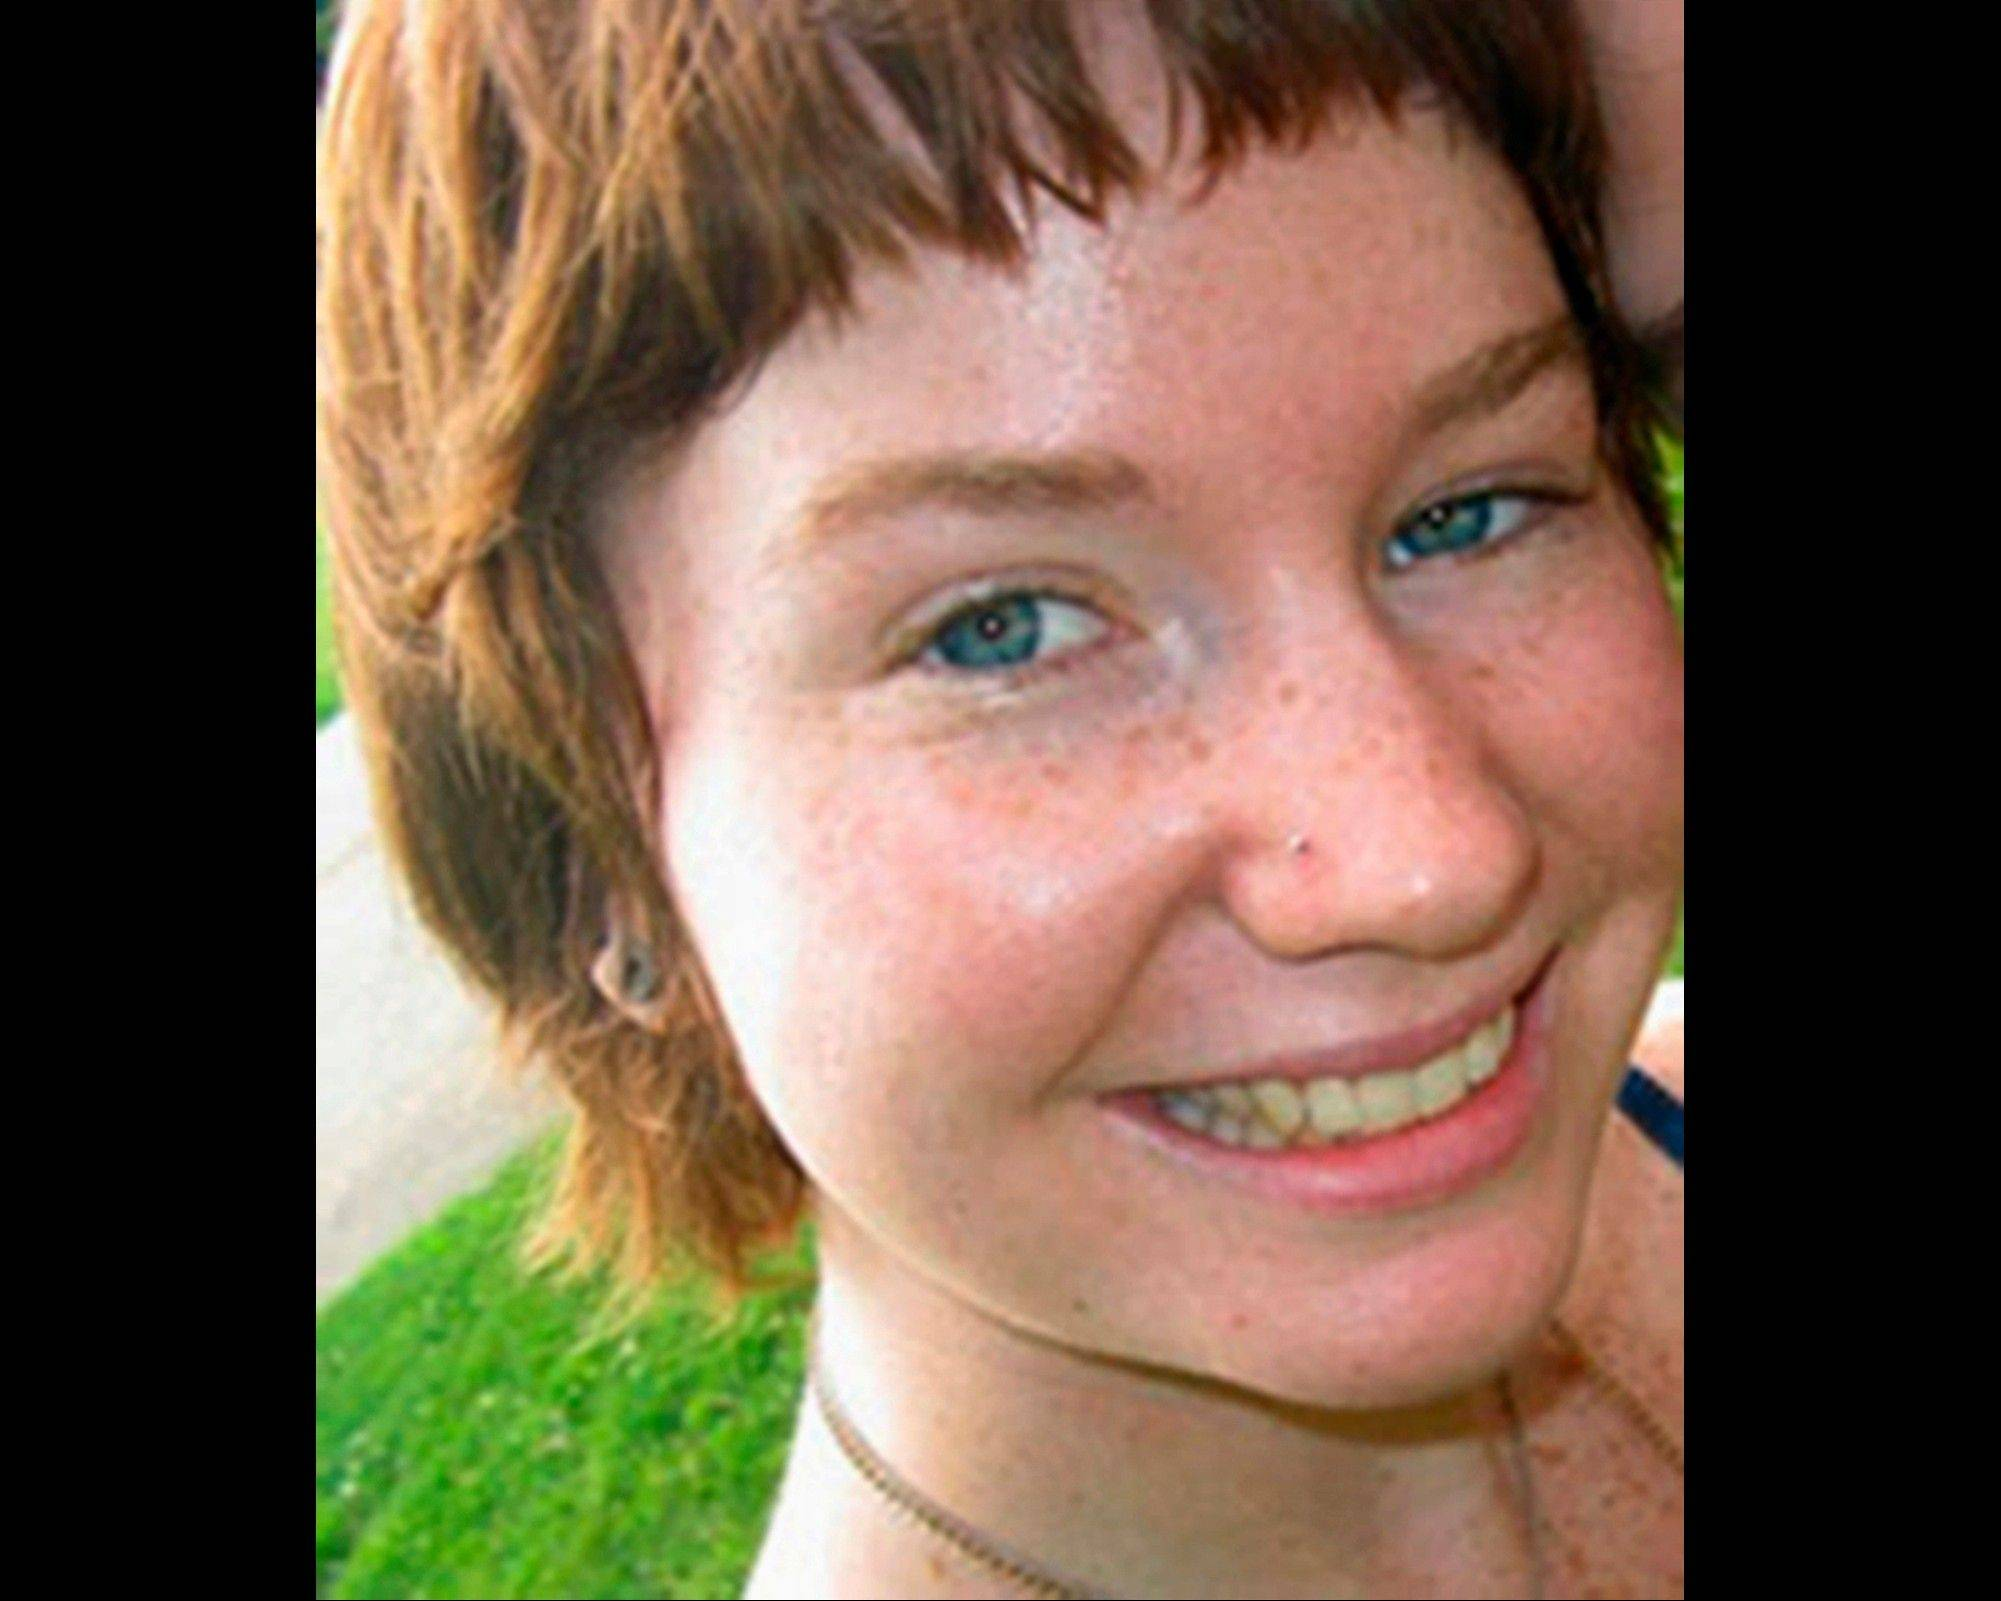 "This undated file photo provided by Northern Illinois University in DeKalb, shows student Antinette ""Toni"" Keller, 18, of Plainfield, who disappeared Oct. 14, 2010, and whose burned remains were later found in a park in DeKalb. On Wednesday, April 3, 2013, William Curl, 36, of DeKalb, who is charged Keller's slaying, will appear in court to enter a plea in exchange for a 37-year prison sentence."